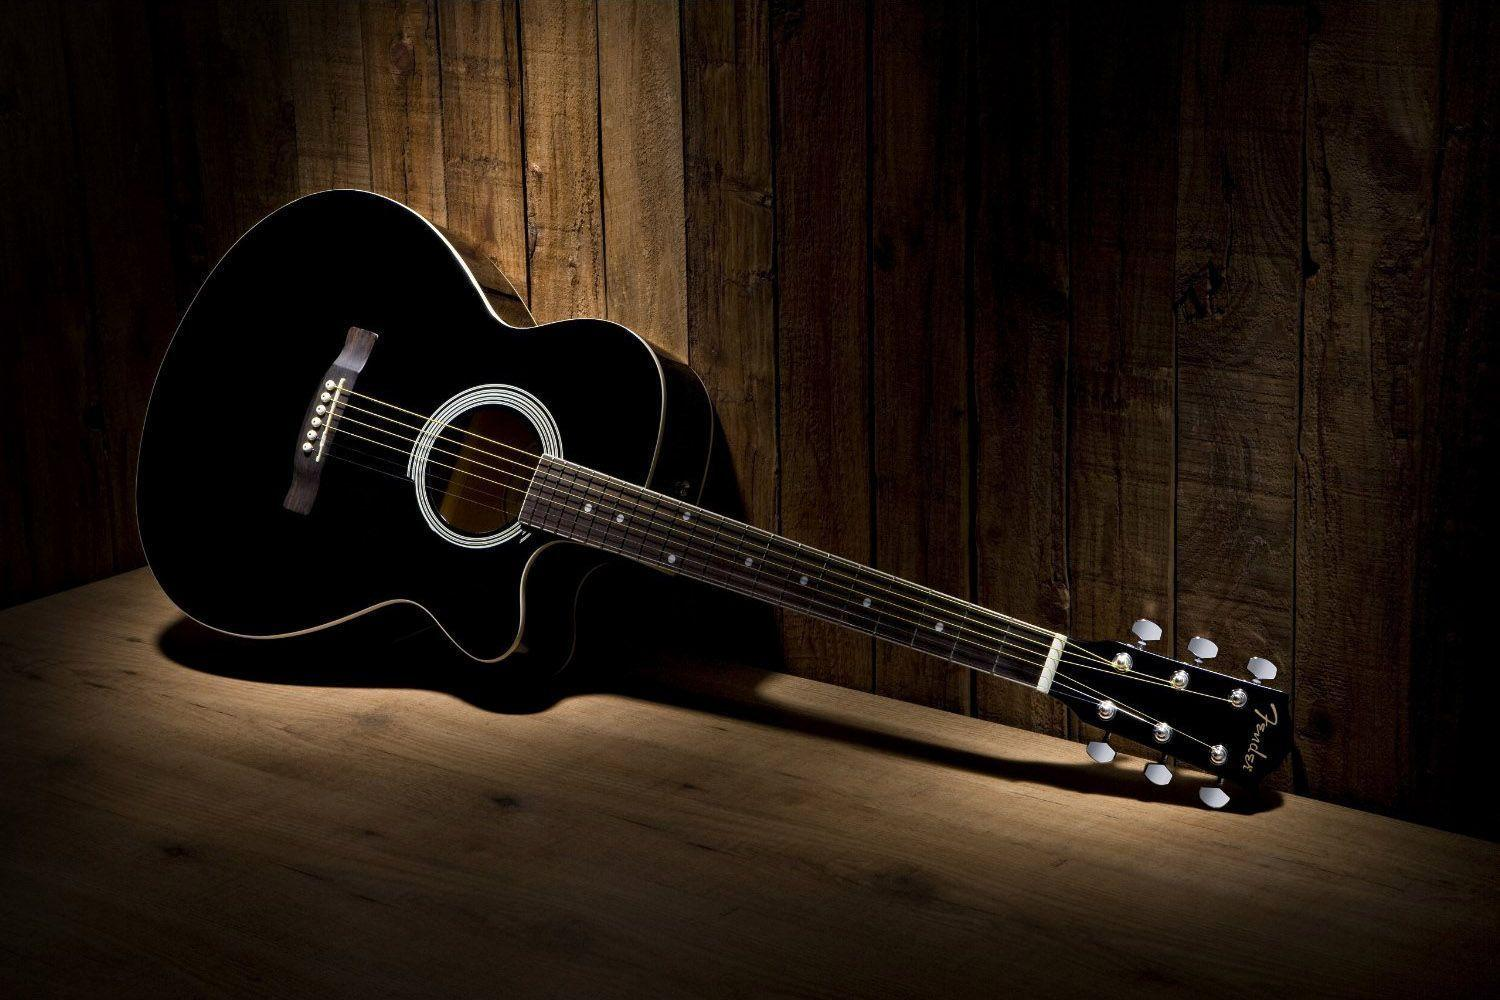 Guitar Wallpapers For Pc Wallpaper Cave